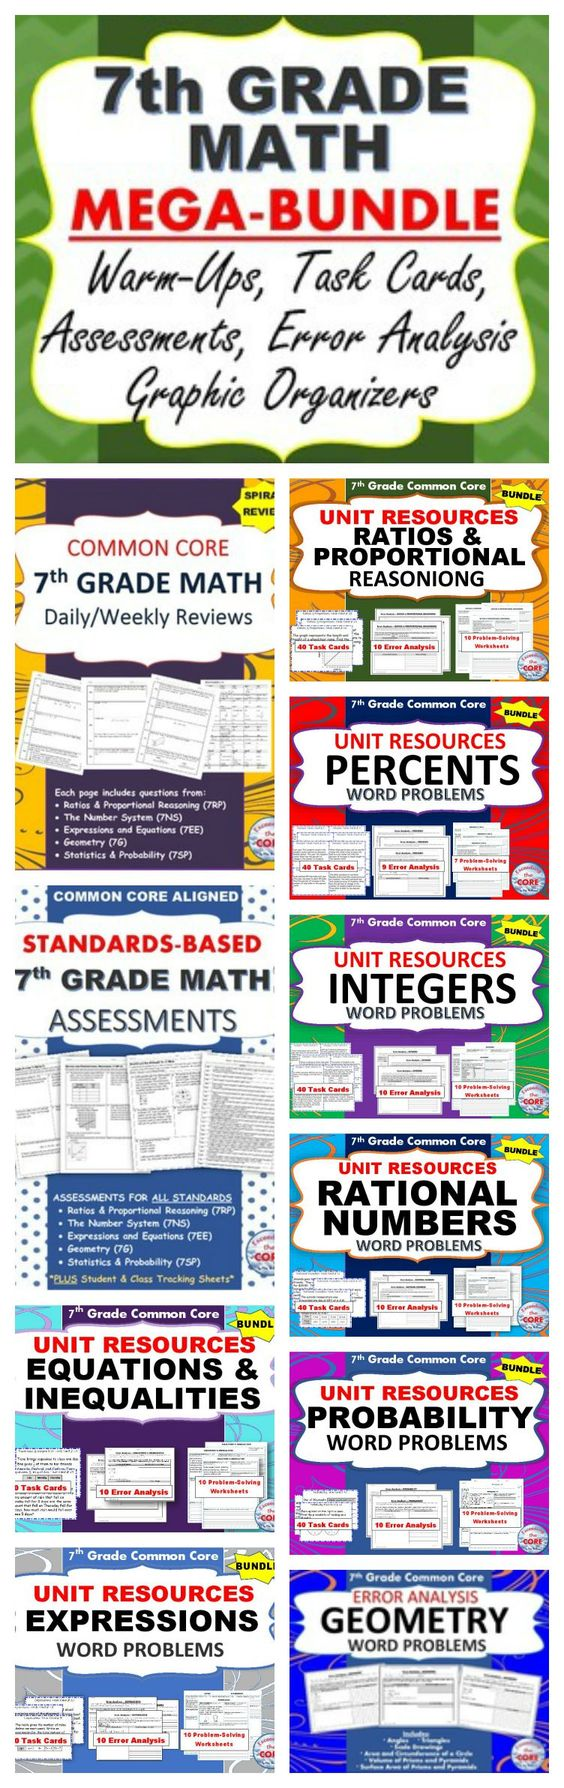 Activities Assessment And Equation On Pinterest